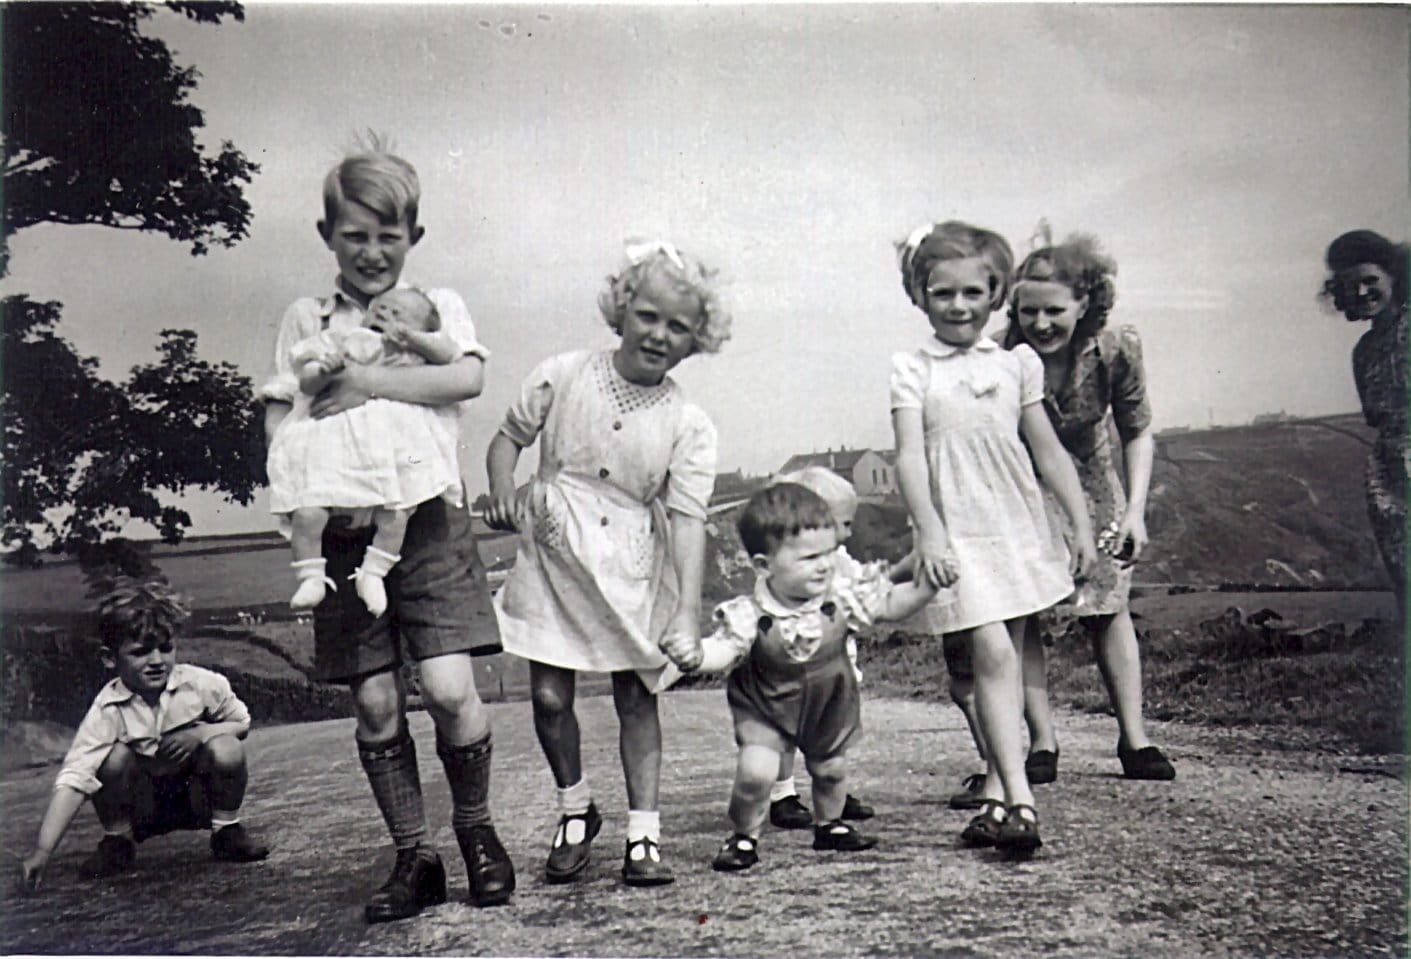 Photo of 1 year old Norky holding his sister Rhondda's hand, together with other children (1948)